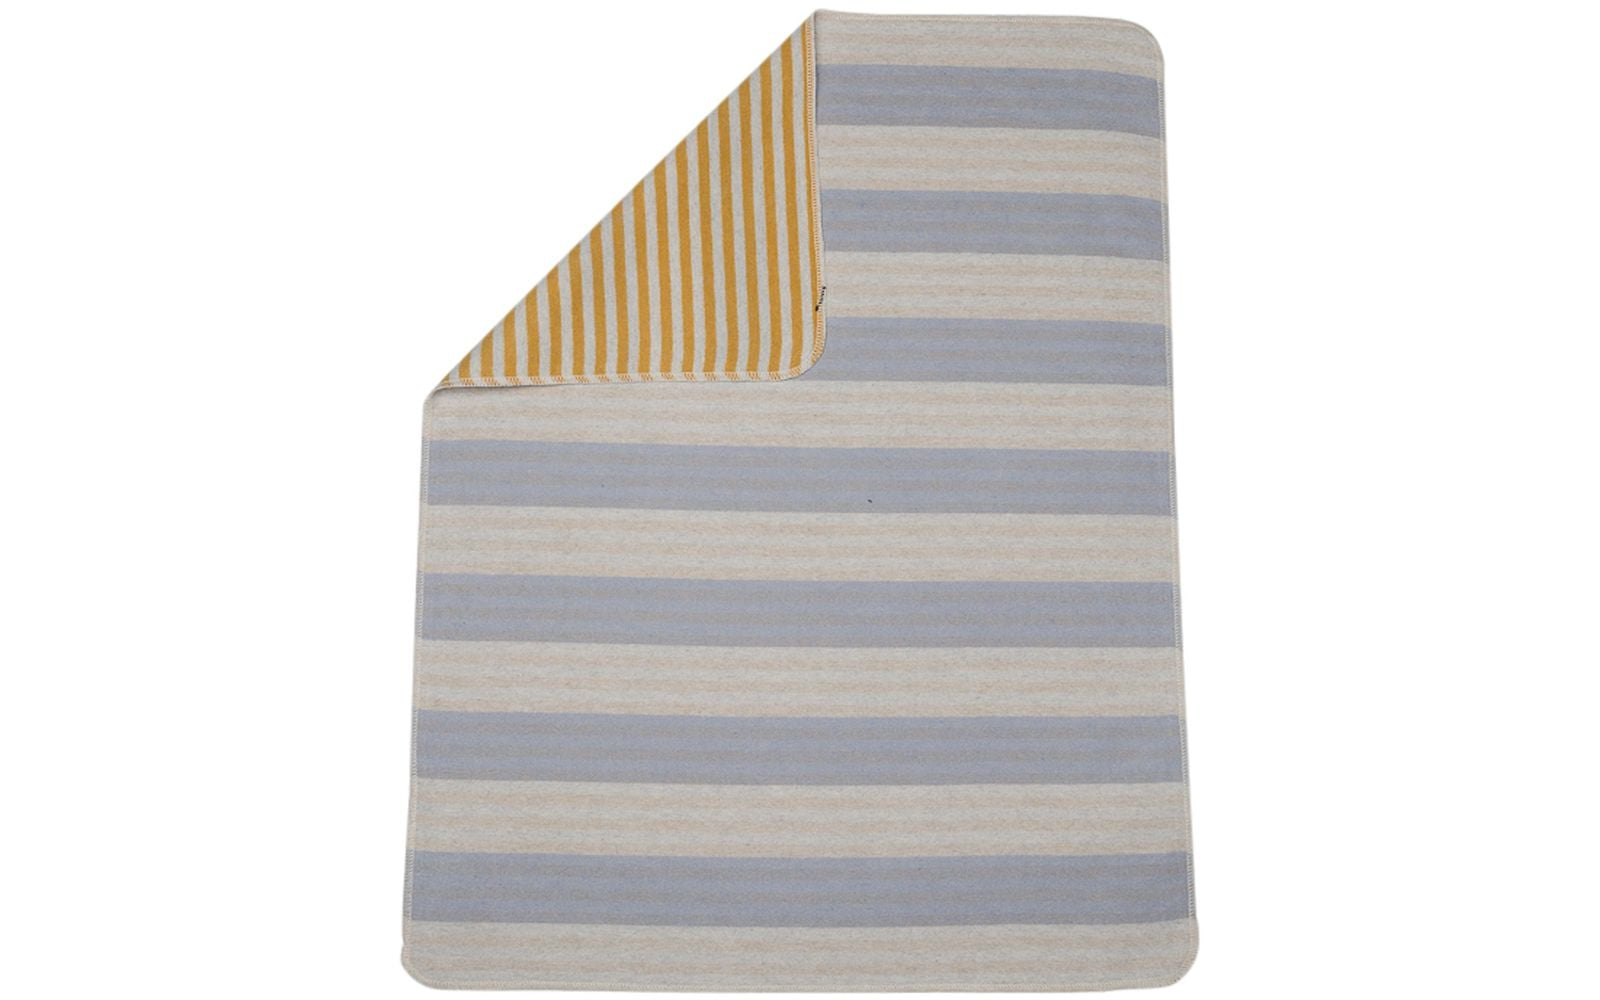 Juwel Blanket/Stripes/Blue